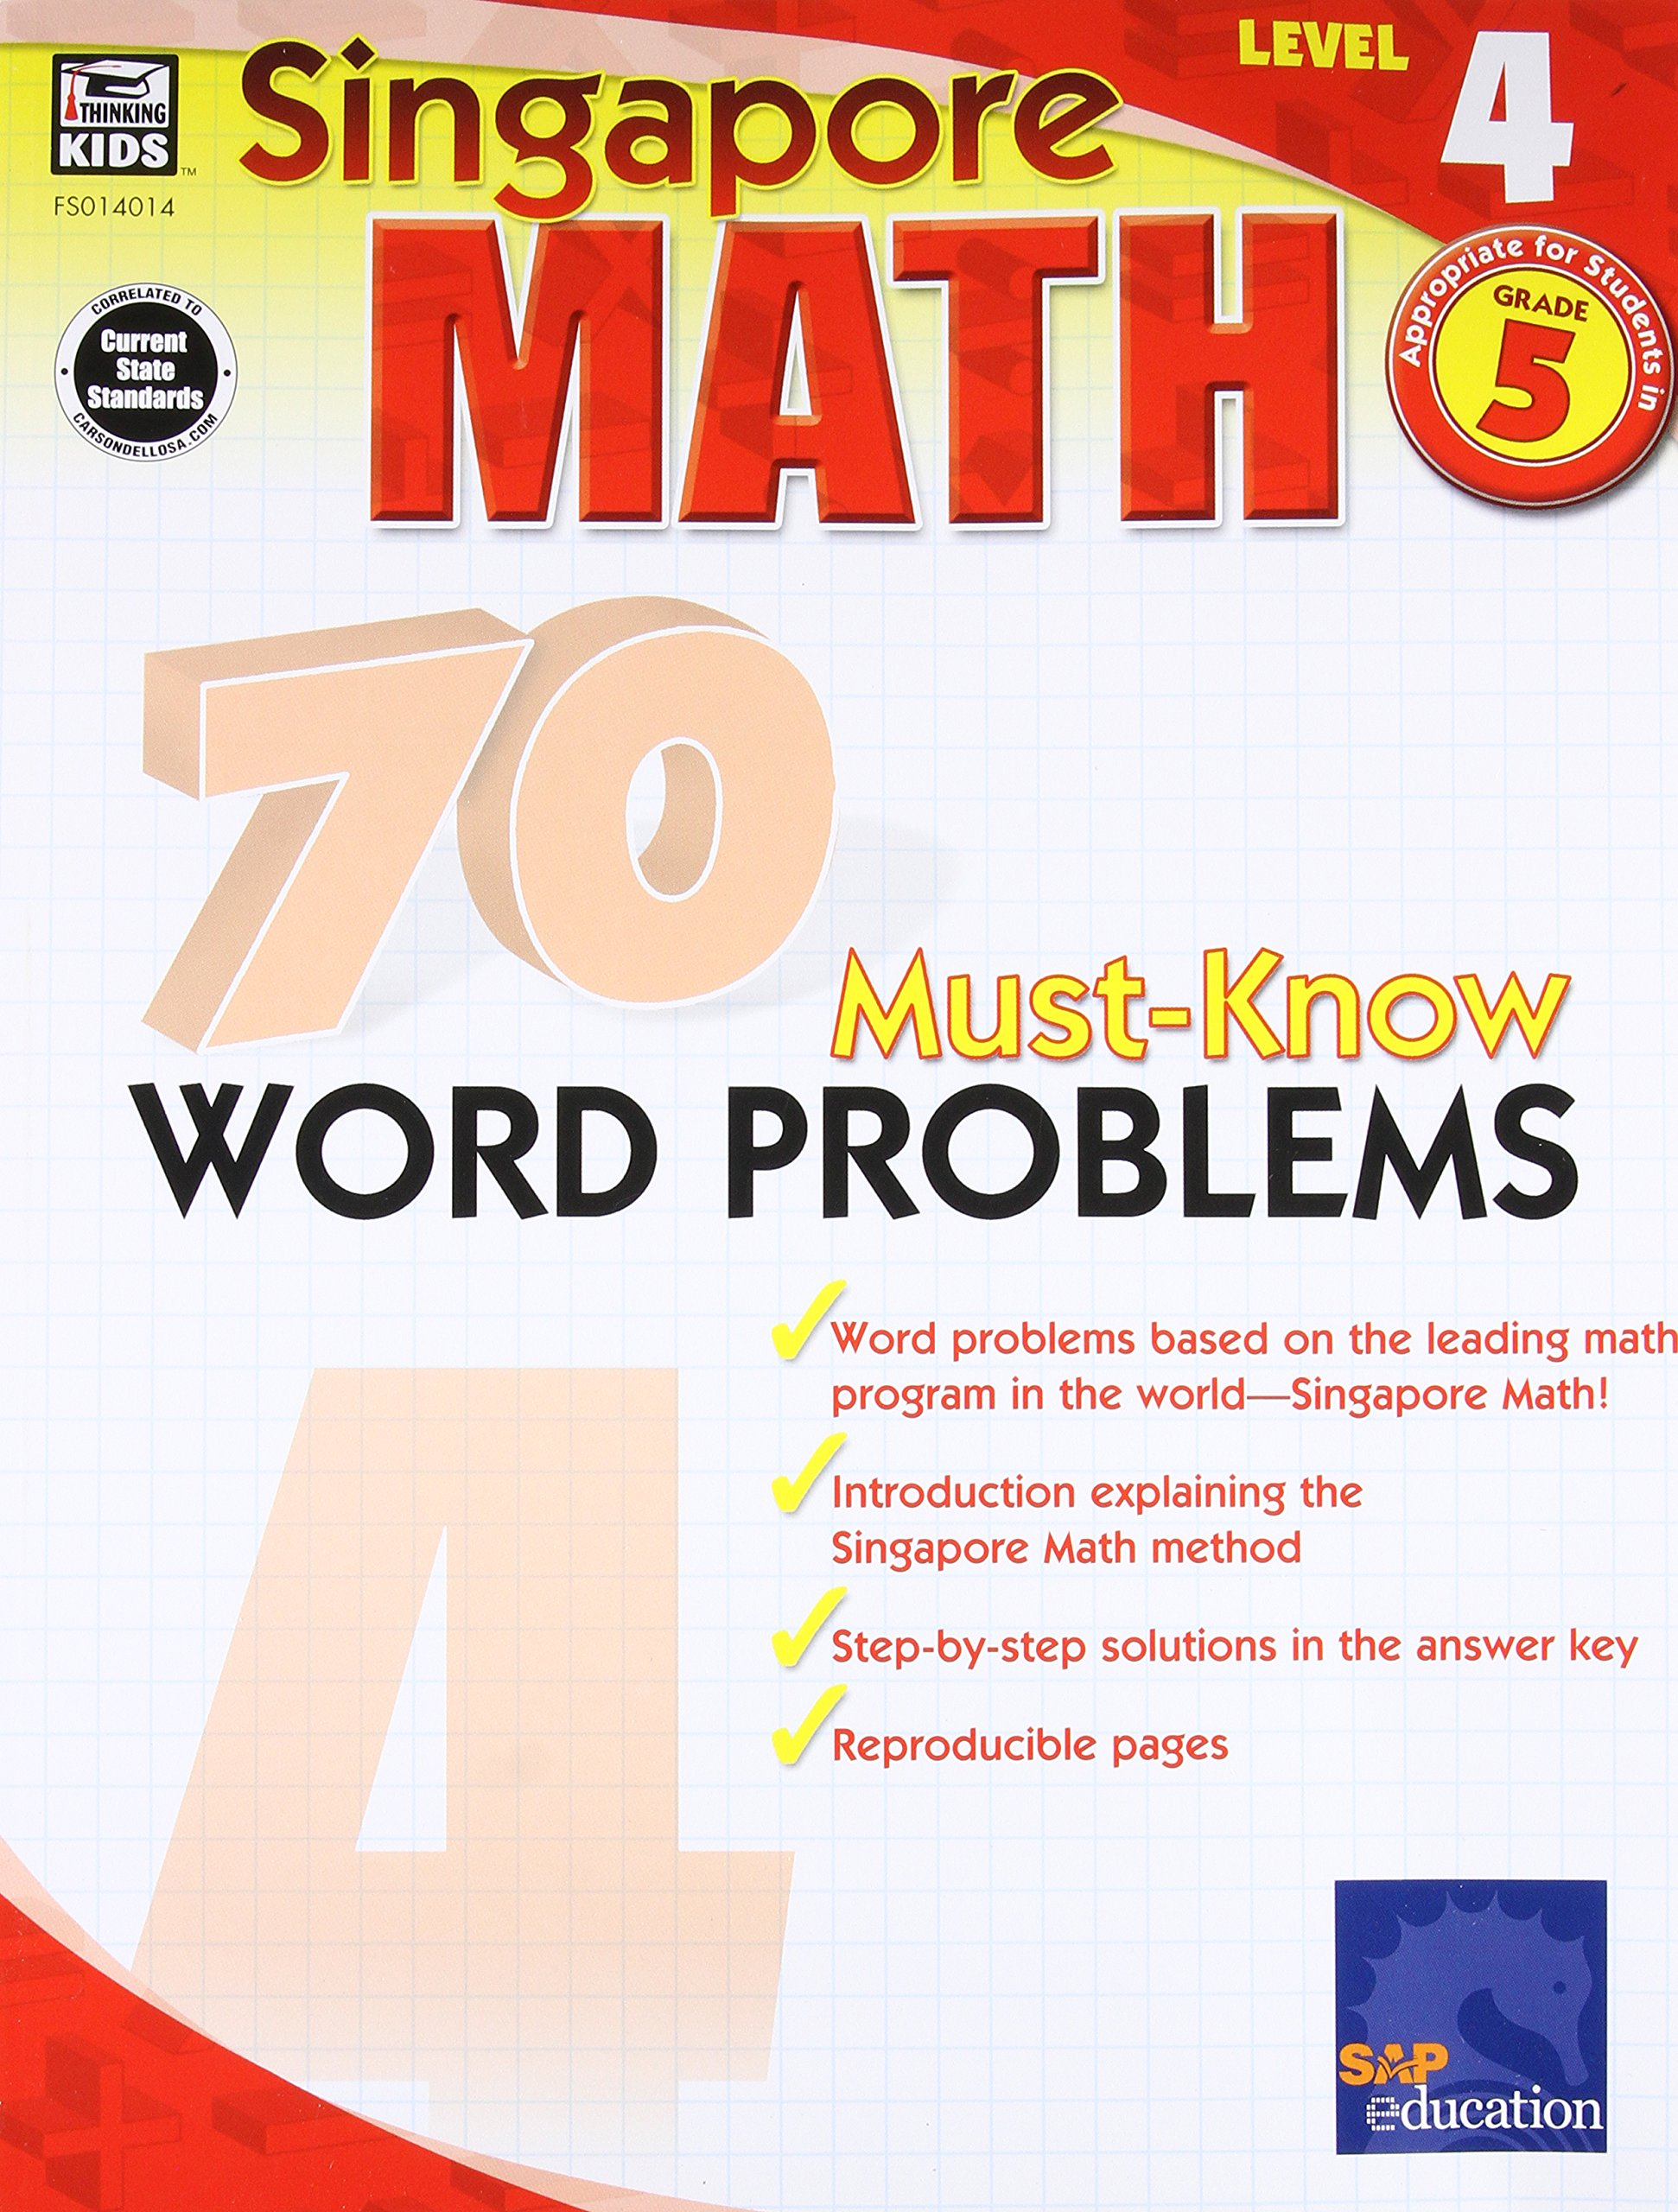 Worksheets Frank Schaffer Publications Worksheets Answers 70 must know word problems grade 5 singapore math frank schaffer publications 0017257140144 amazon com books